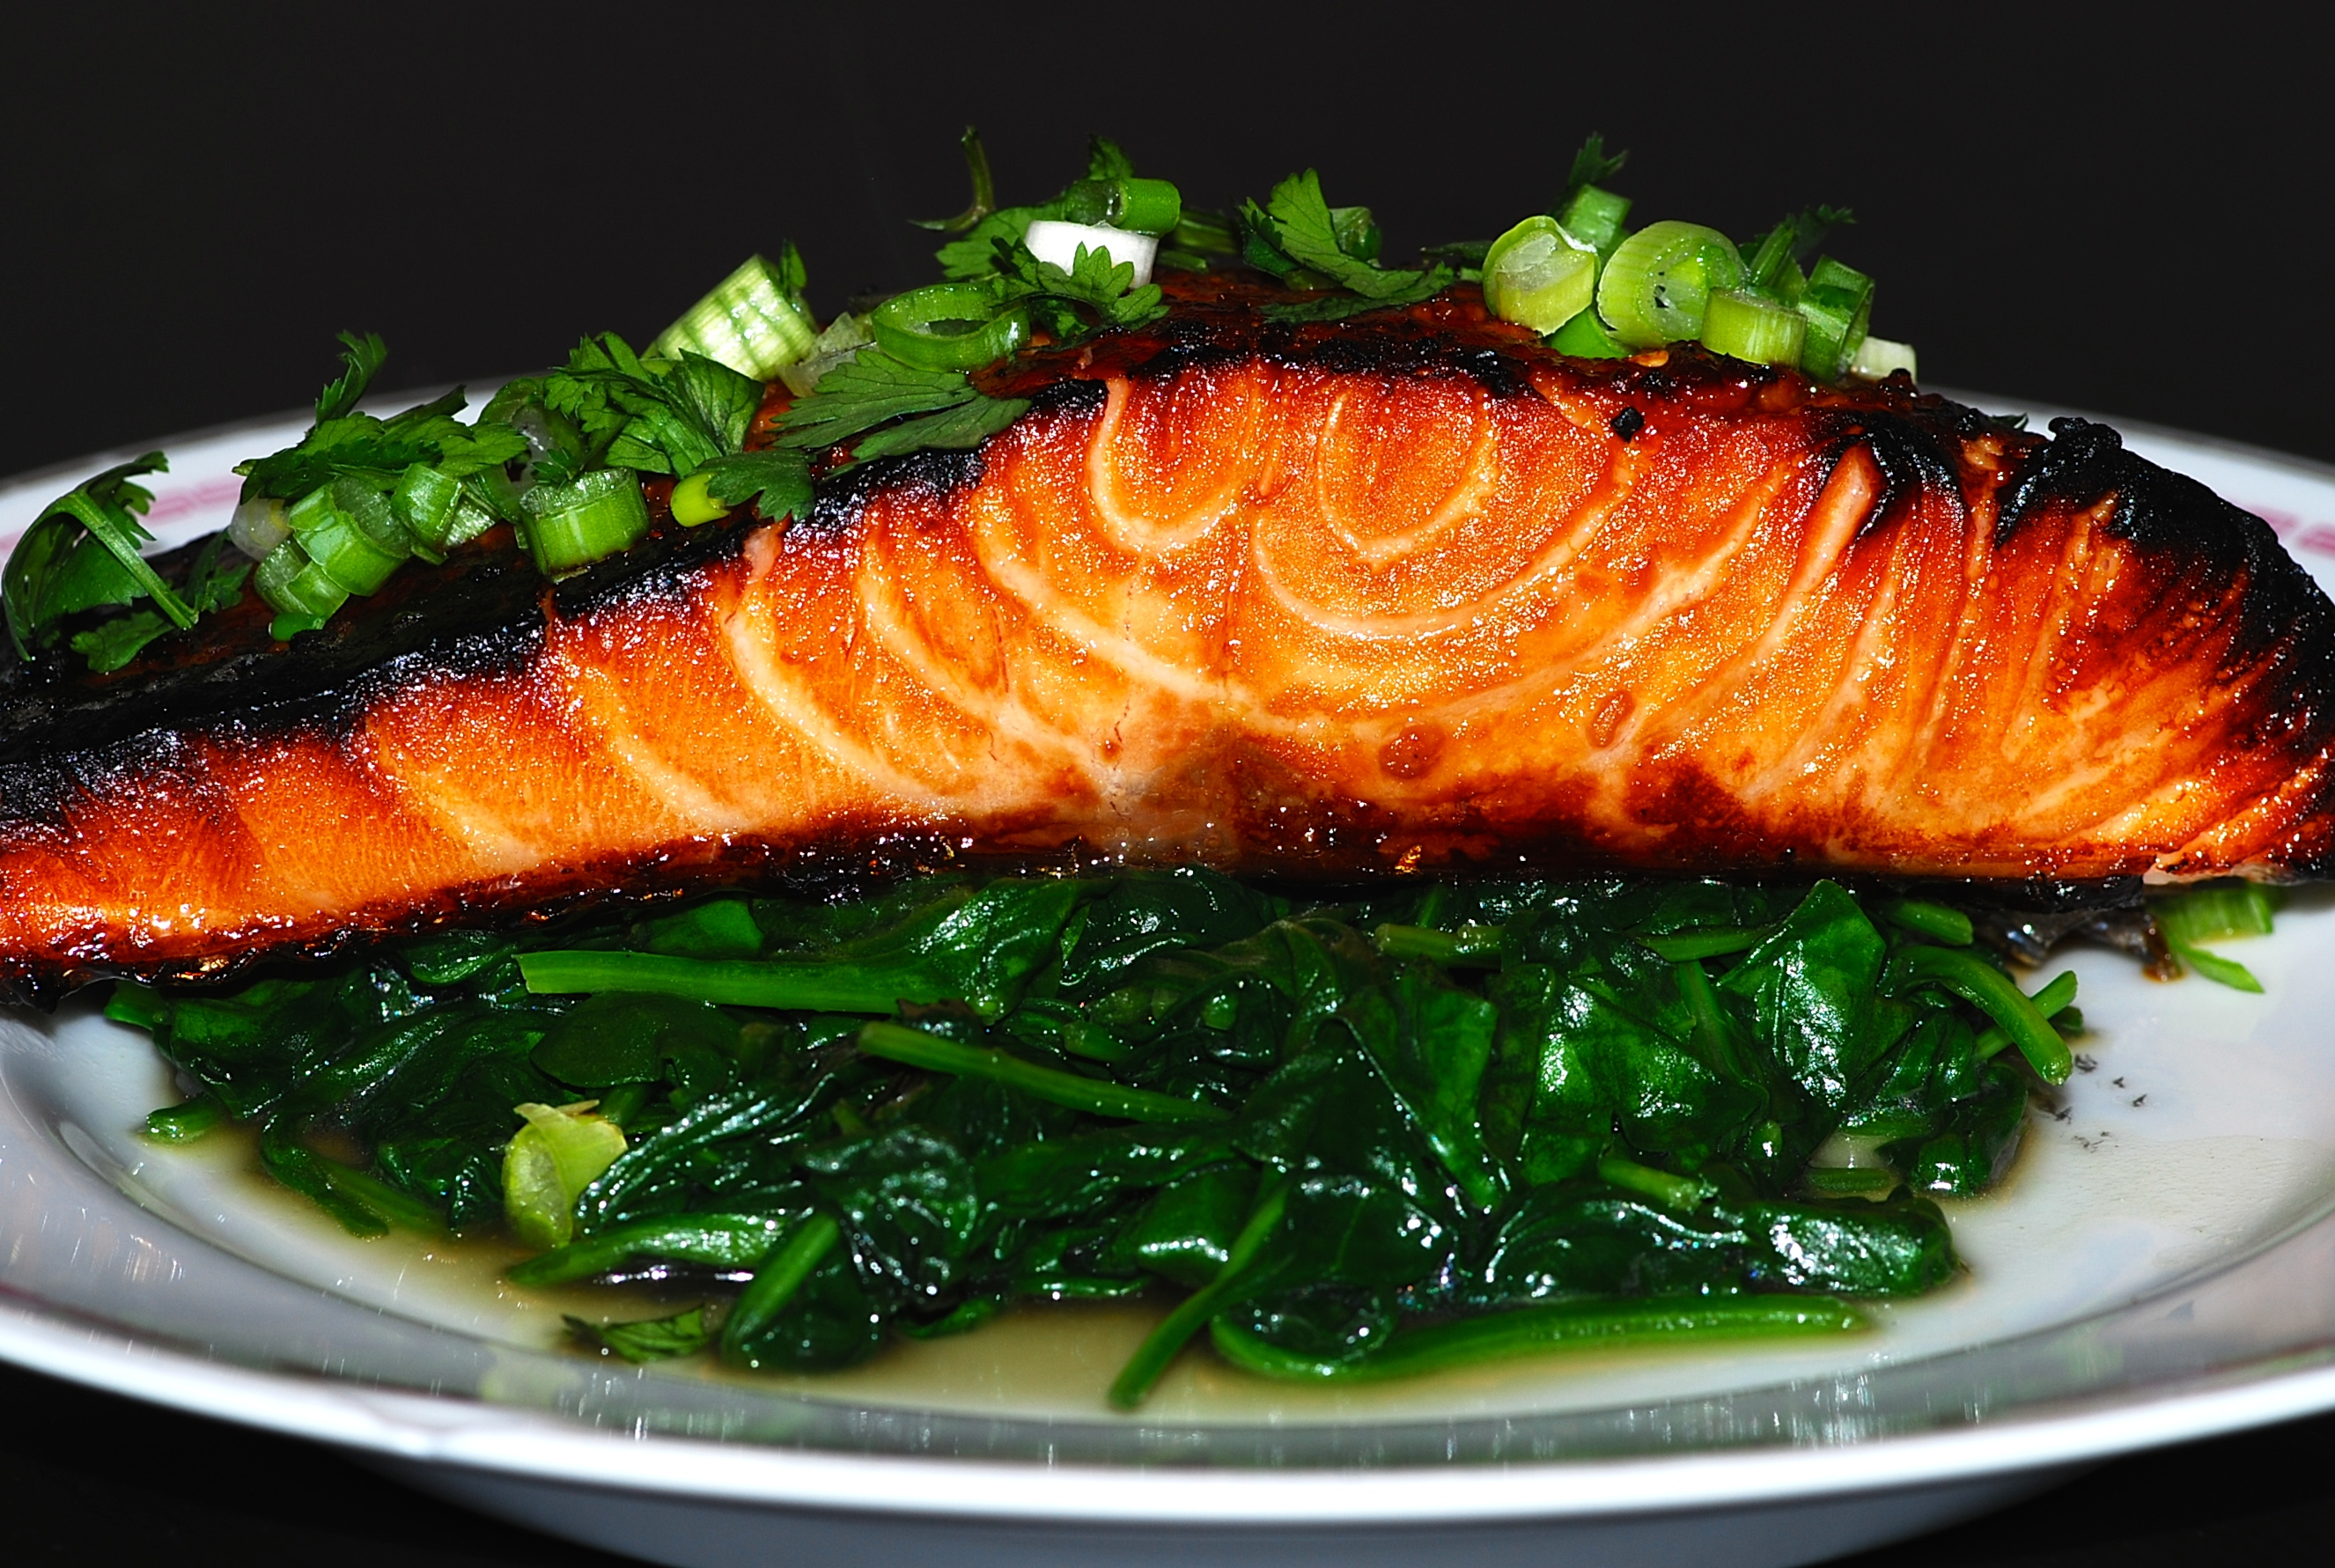 So Thanks To This Blog, I Decided To Cook Something That I Never Do €� Cook  Salmon Not Because It Is Too Difficult Or Anything, Just For Some Reason I  Don't